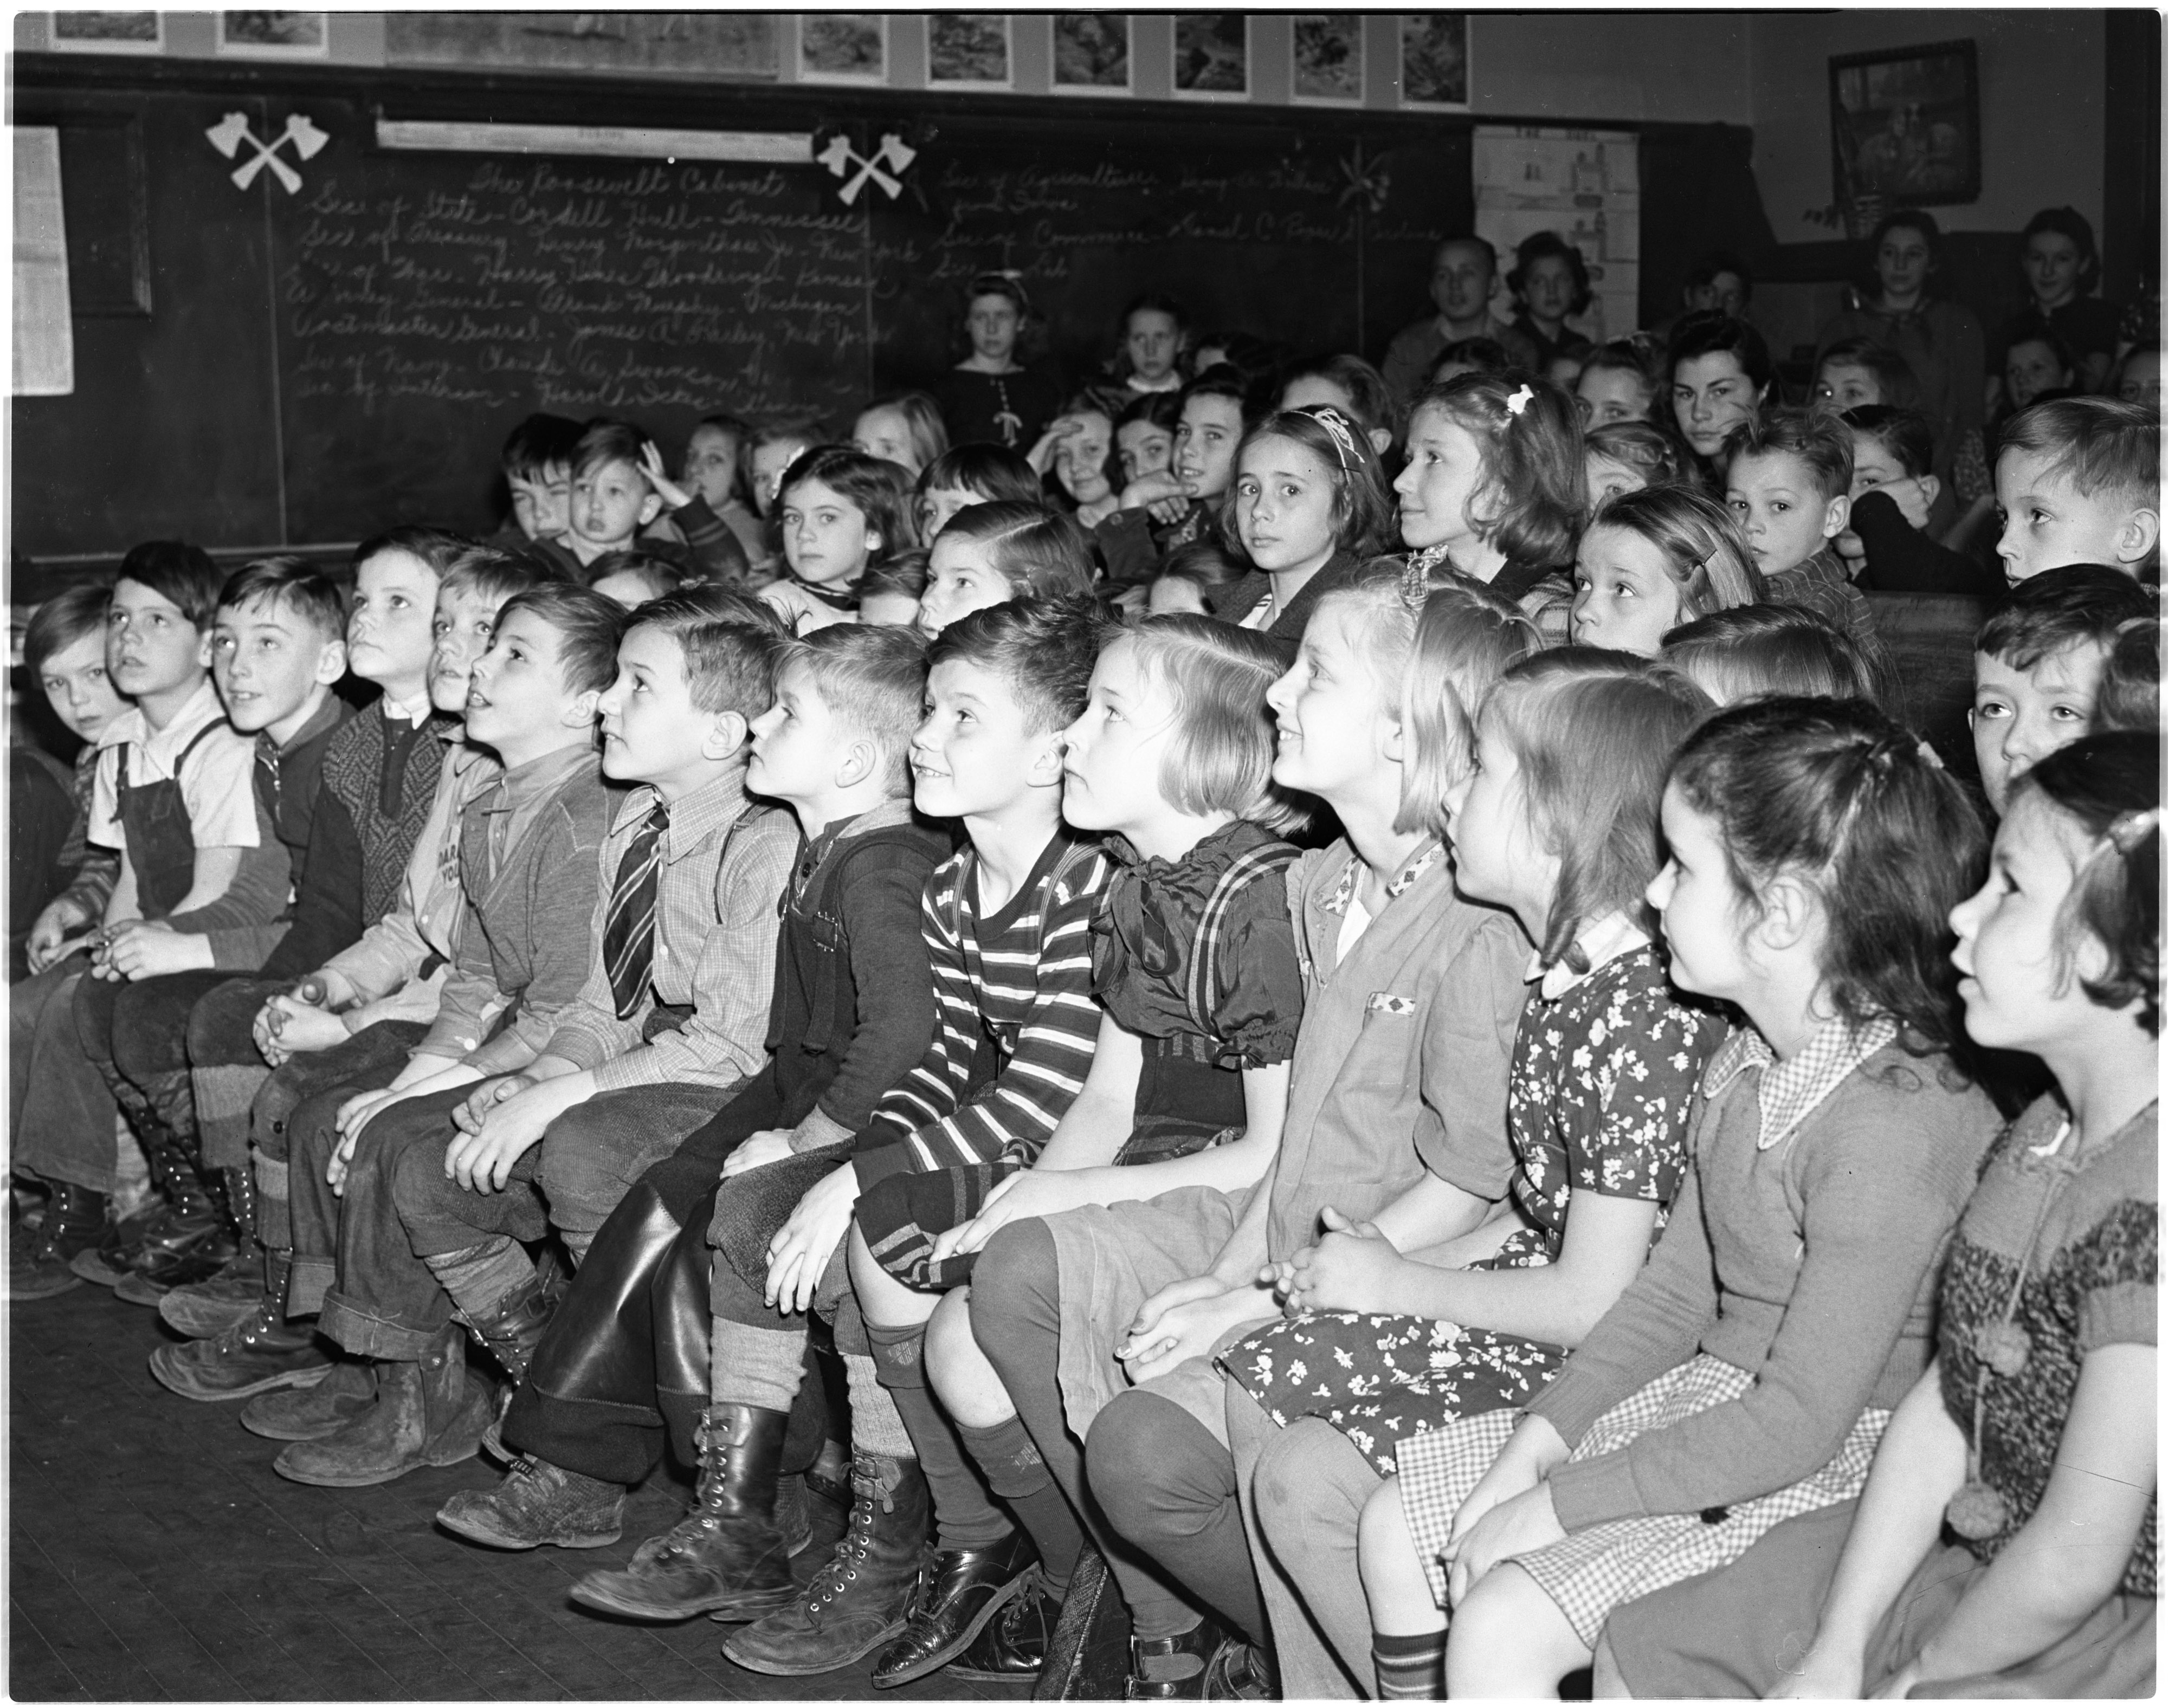 Movie Screening, Whitmore Lake School image